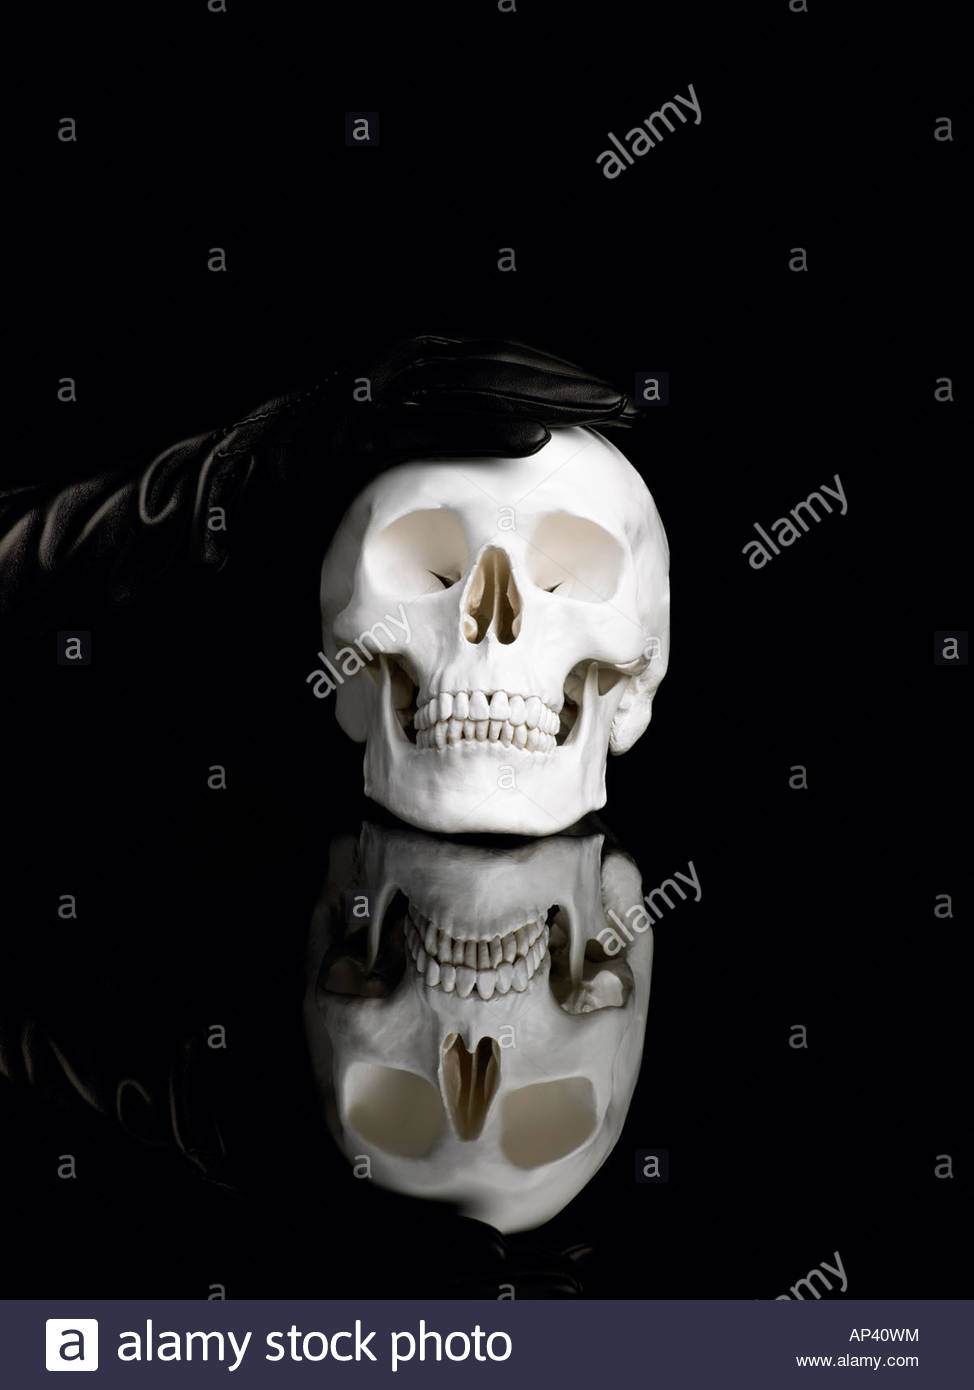 A gloved hand touching a human skull - Stock Image